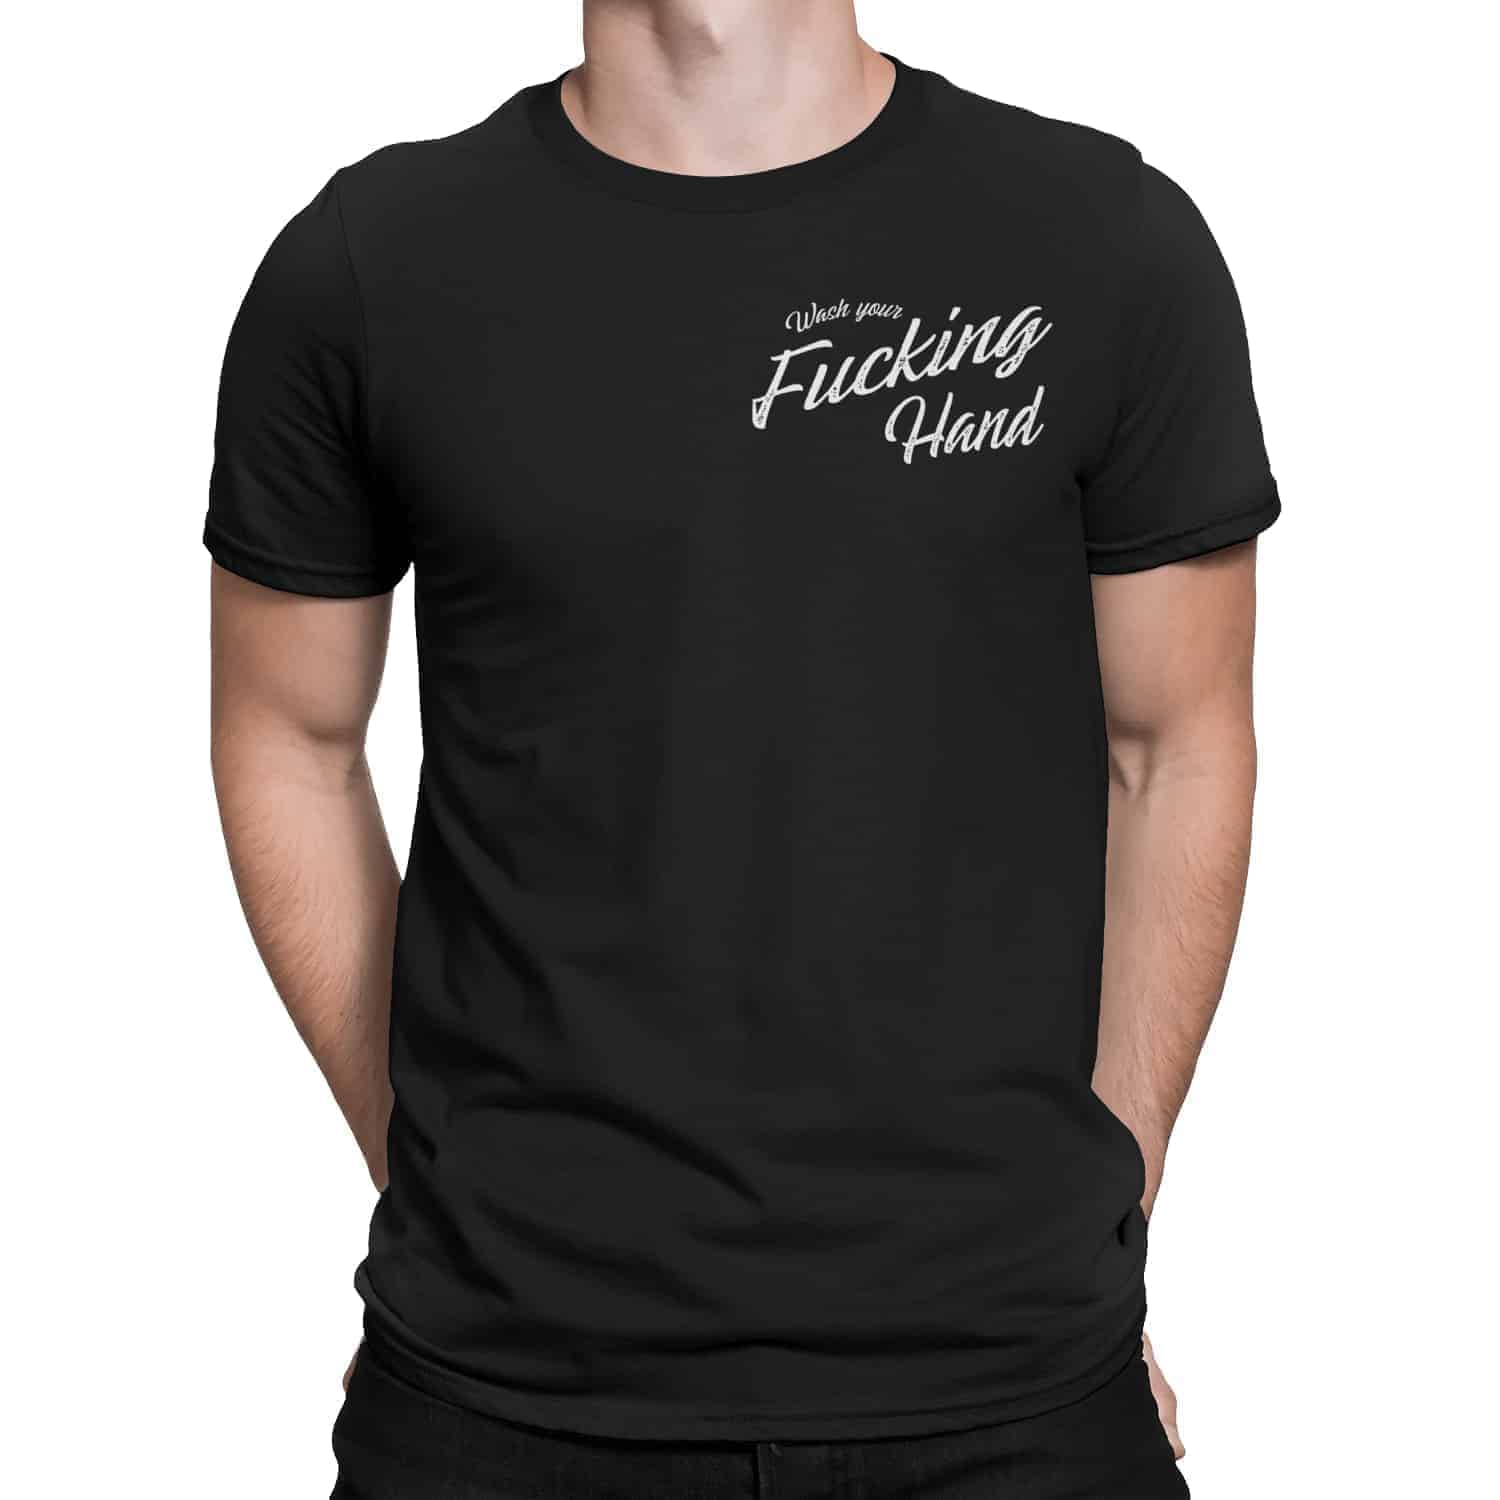 Wash your fucking hand t-shirt pour homme